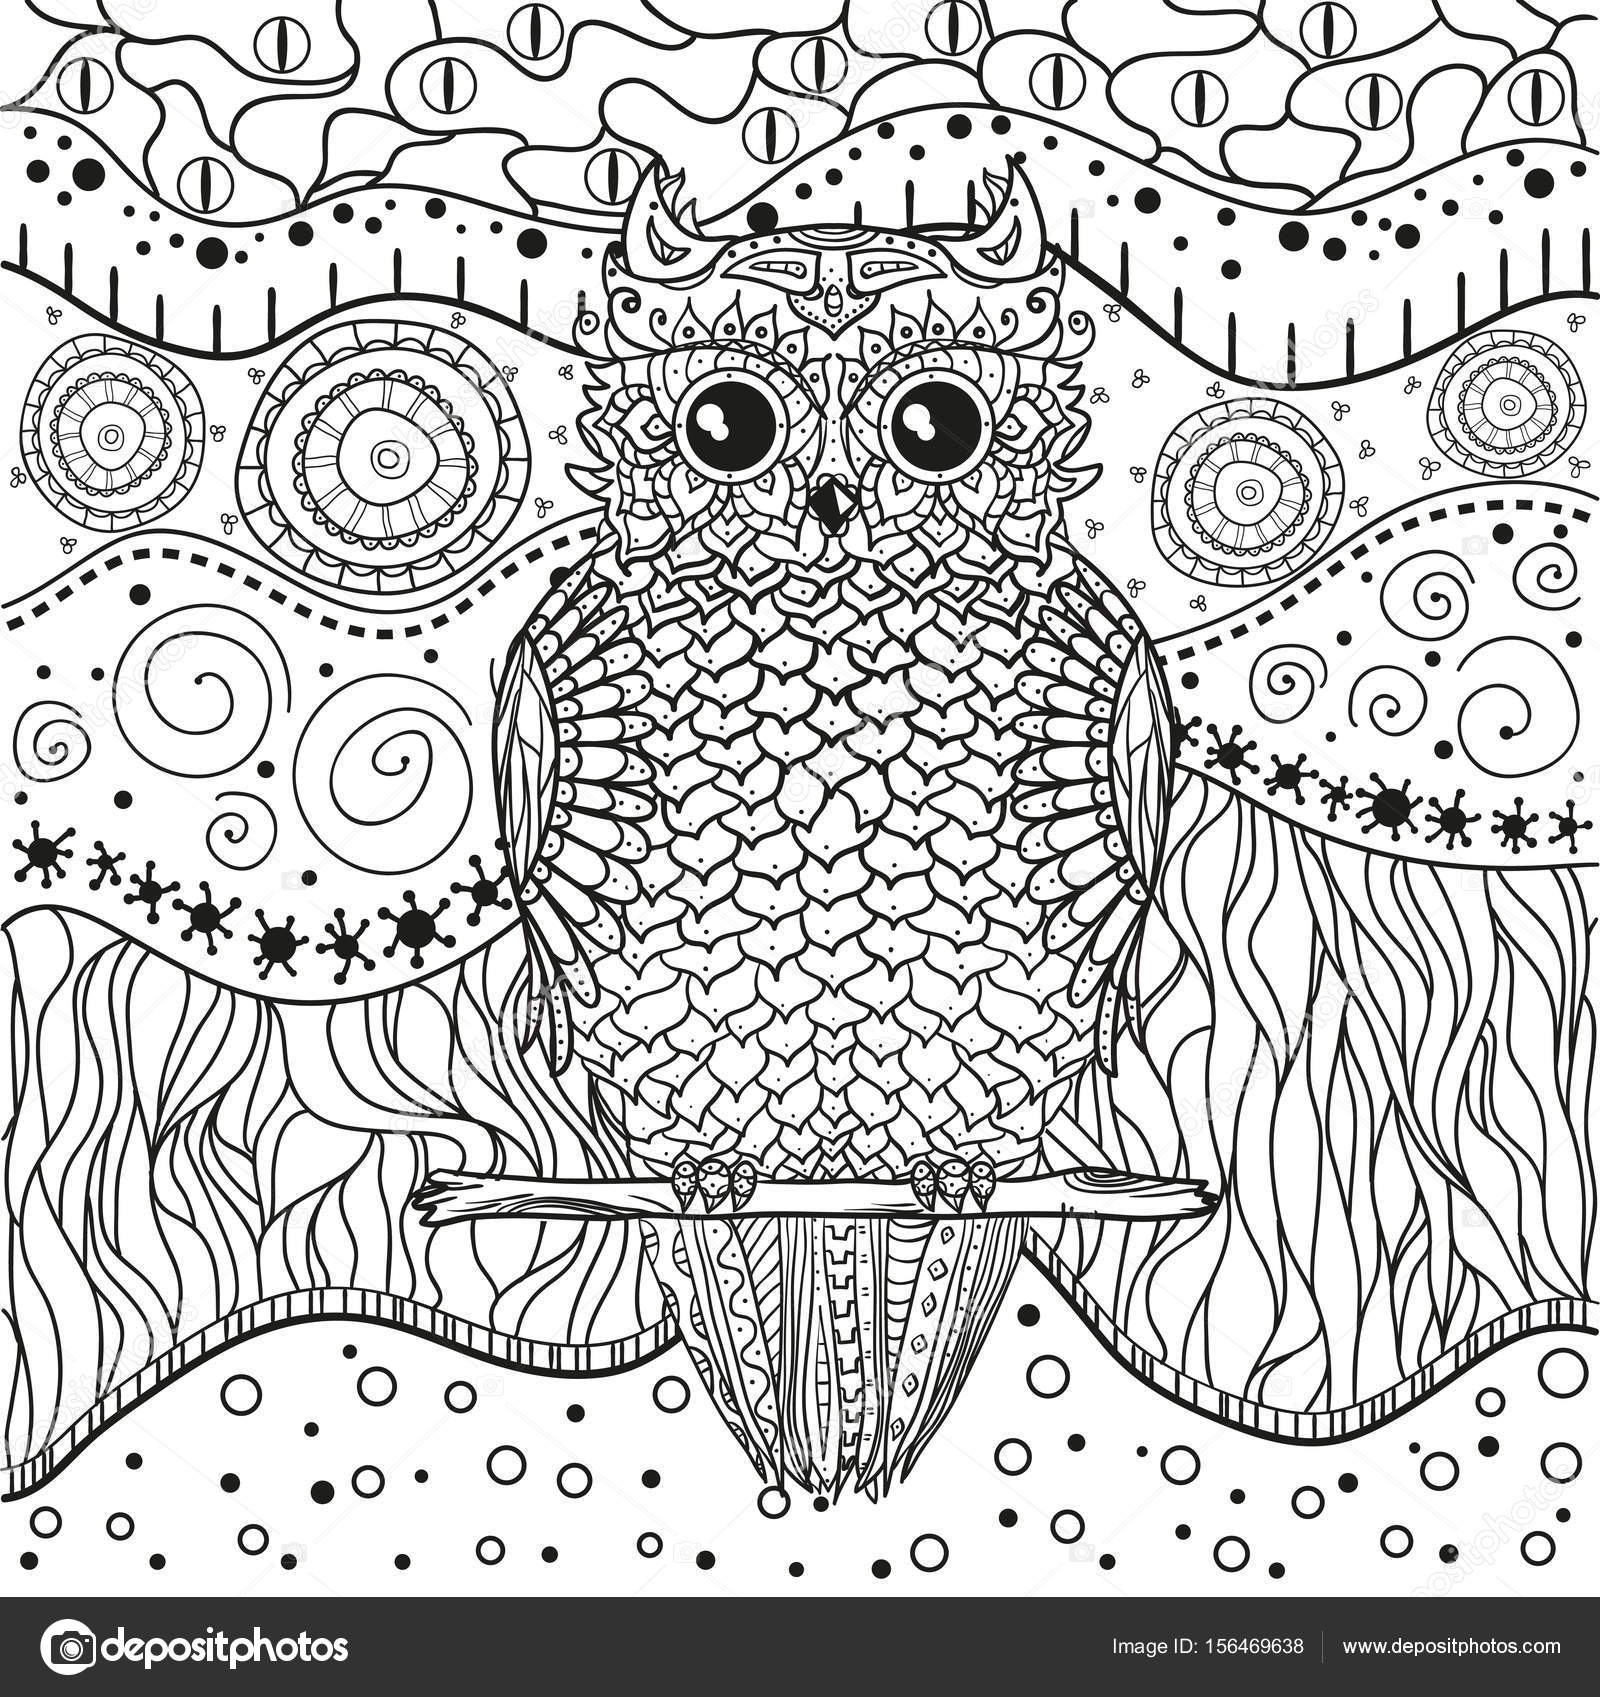 Mandala With Owl Stock Vector C Mikabesfamilnaya 156469638